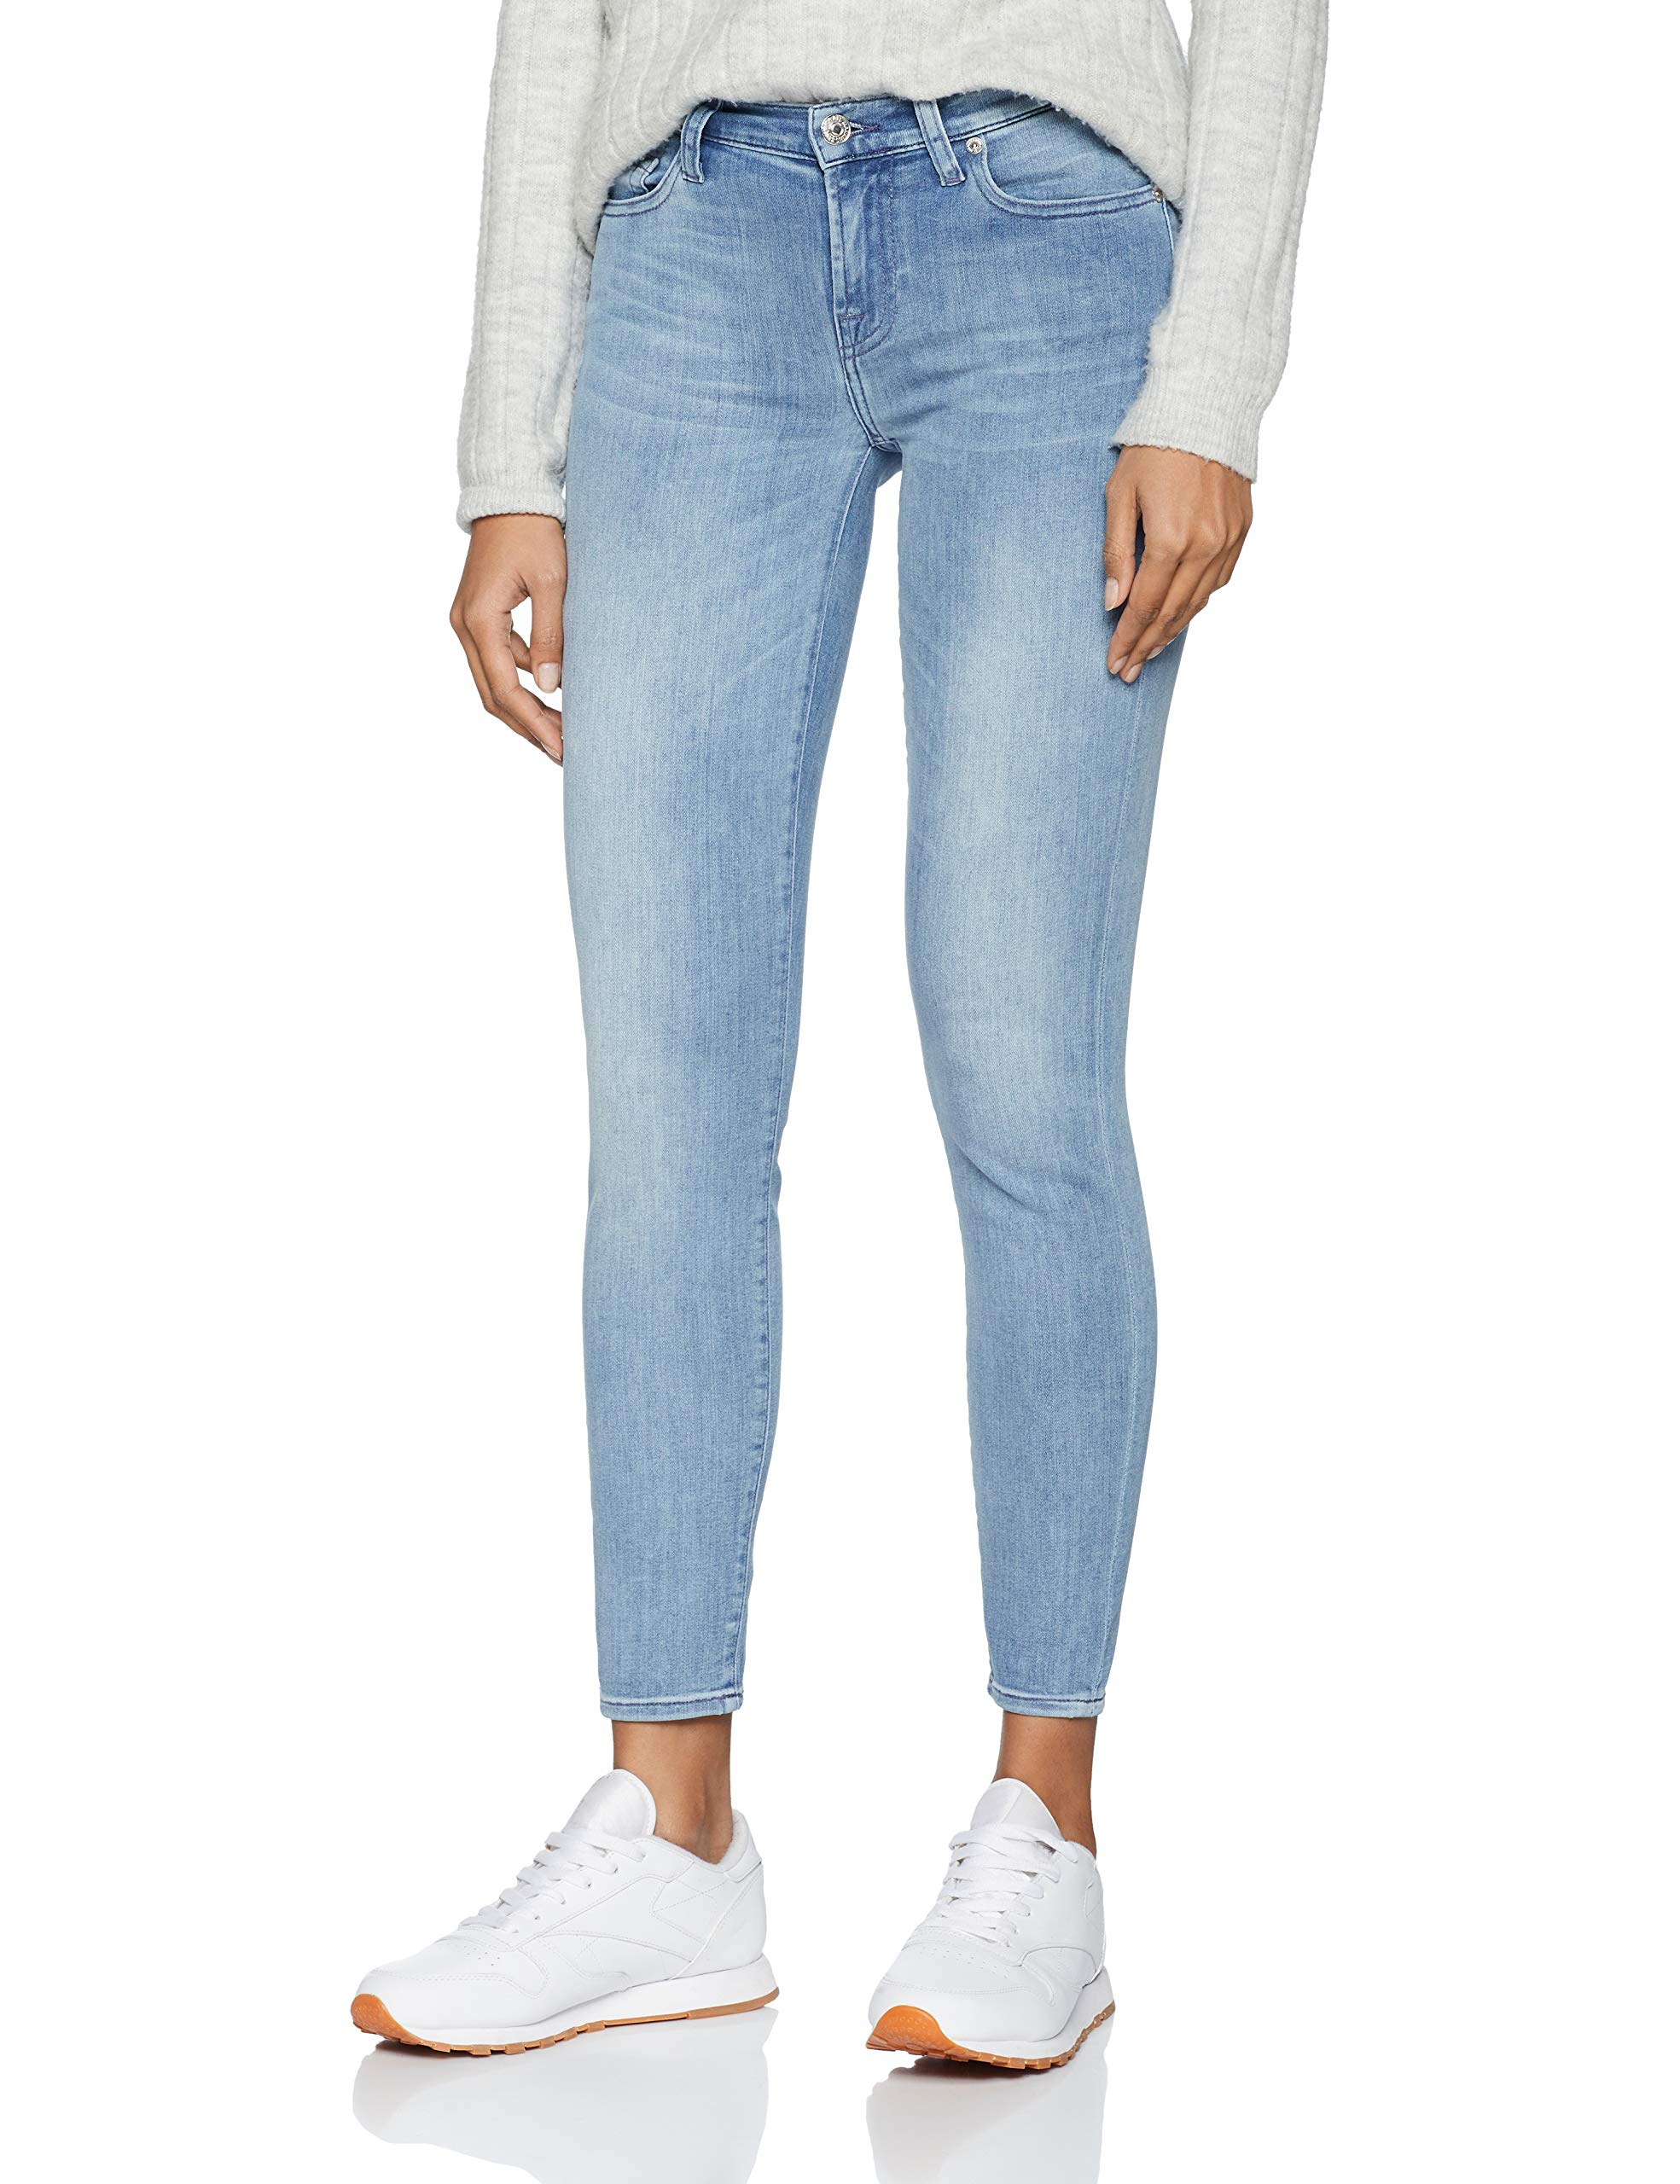 Seven International 7 Mankind CropJean 0rktaille FemmeBleub Fabricant28 Skinny Mirage For All Sagl Air The QrxCtsdh